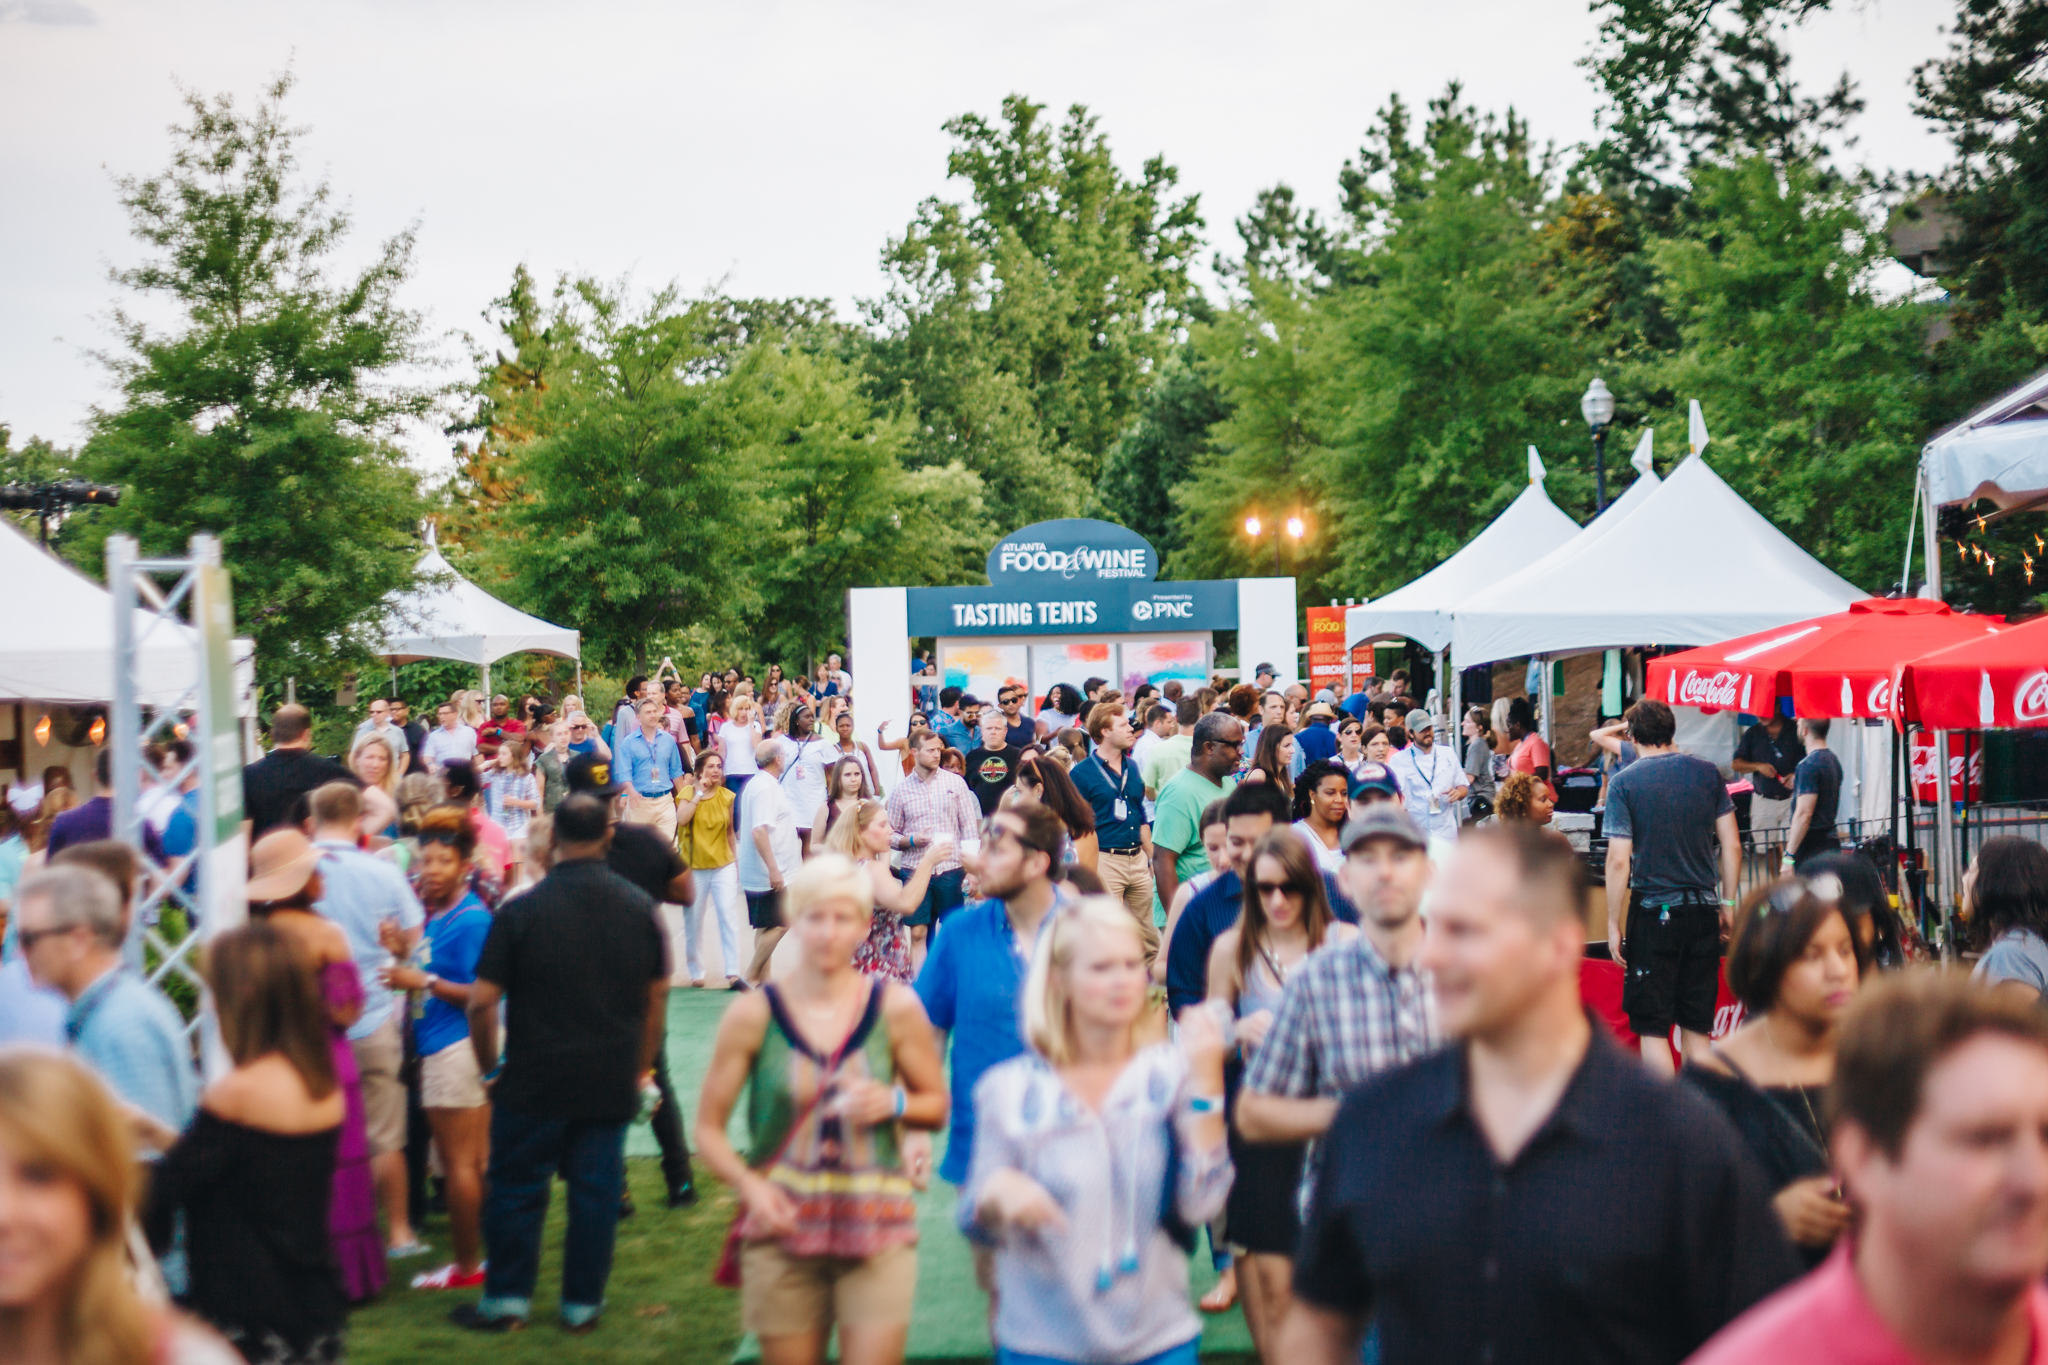 Tasting Tent Experiences in Old Fourth Ward Park